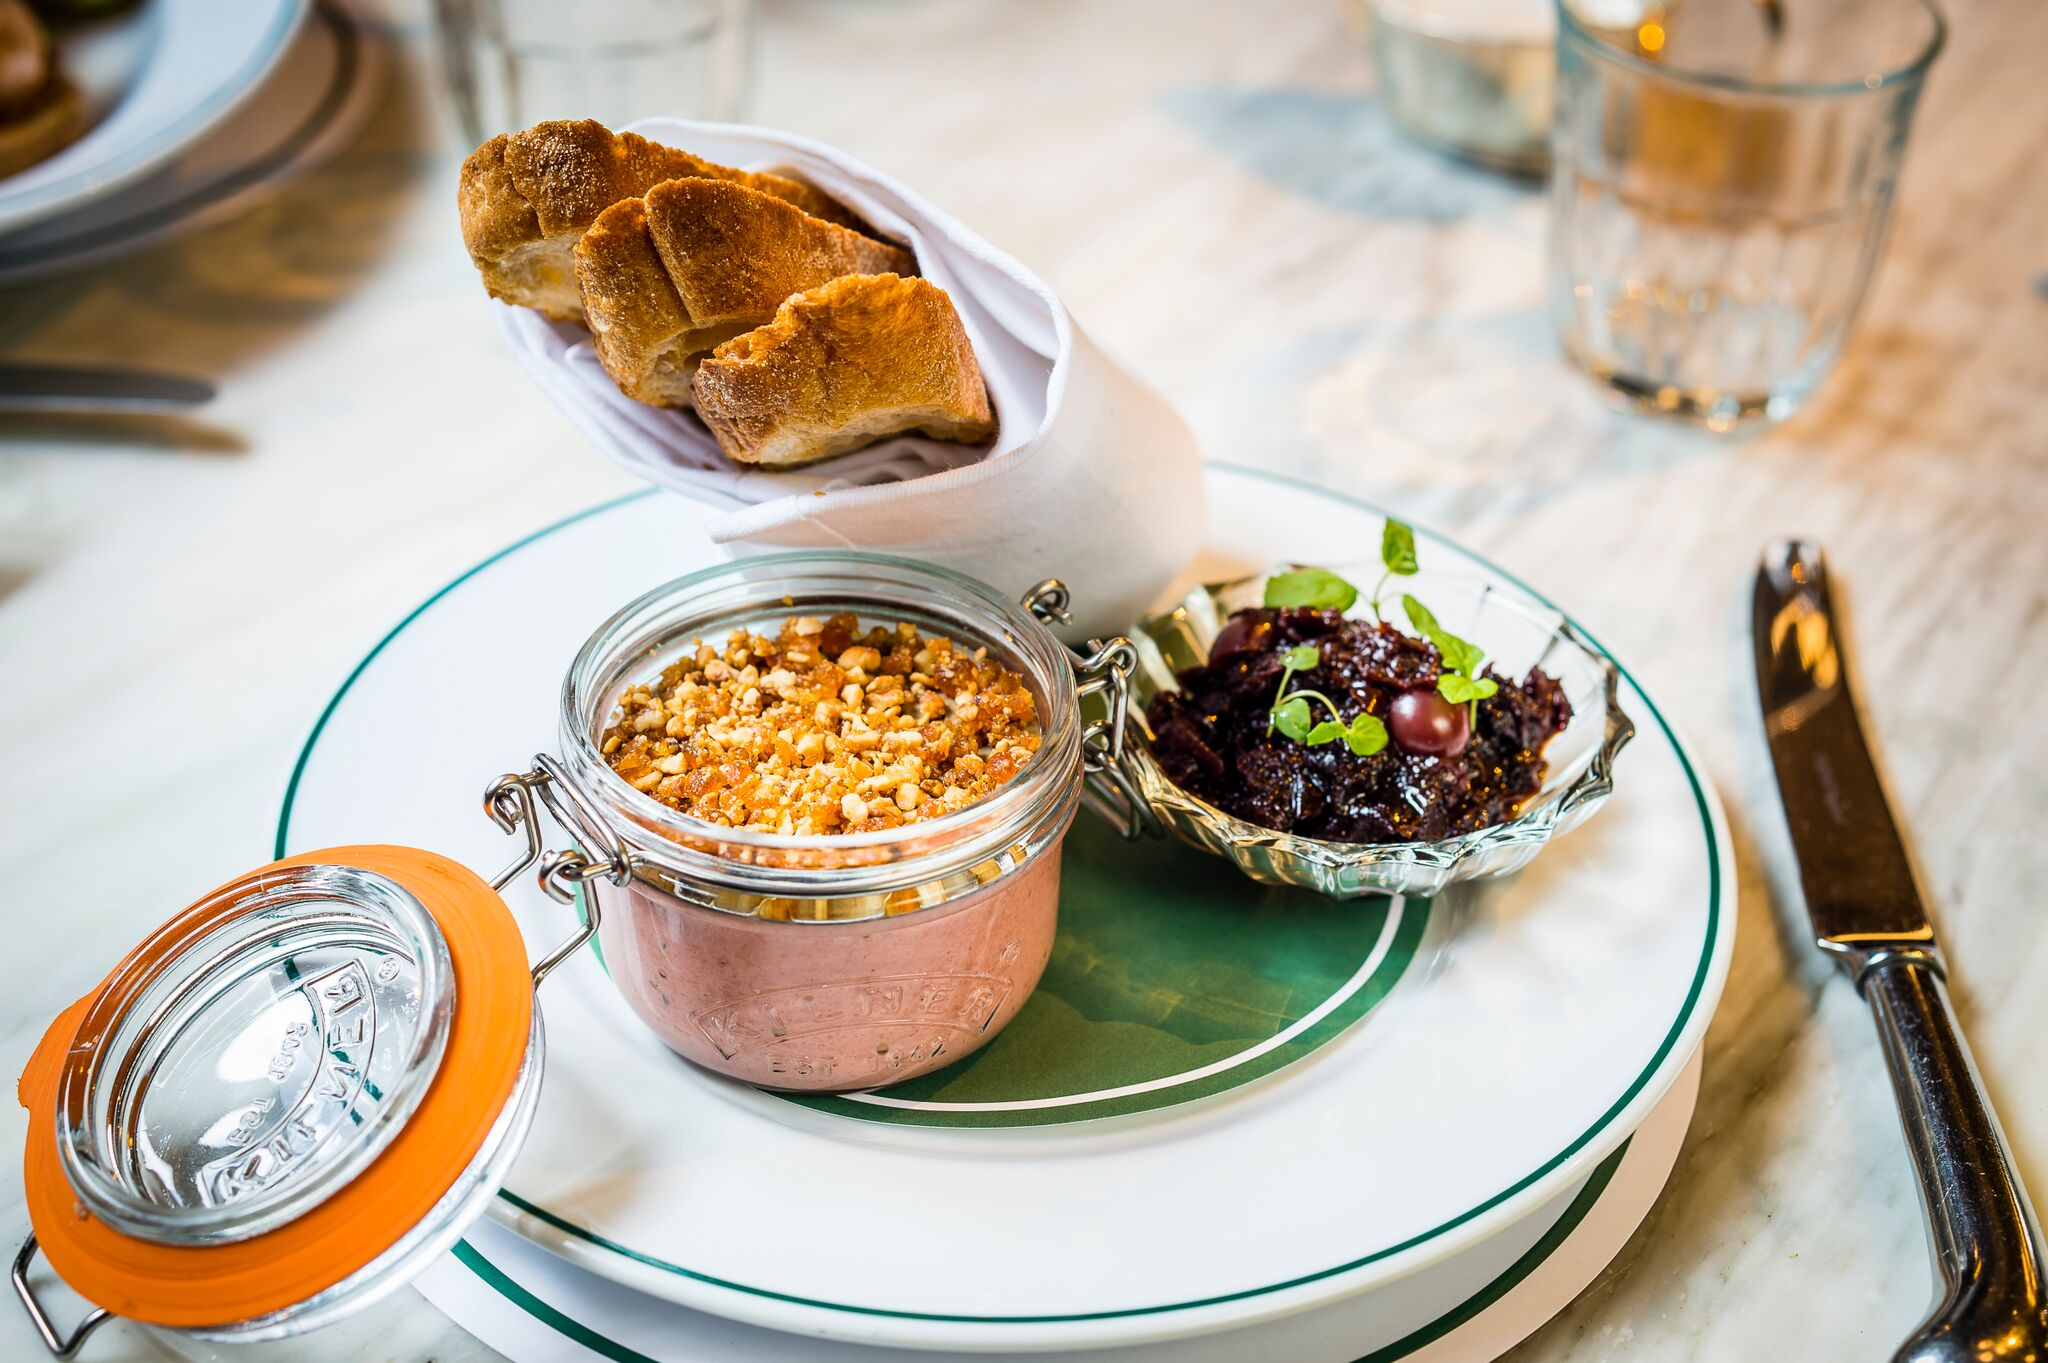 Chicken Liver Parfait - The Ivy Tower Bridge _preview.jpg